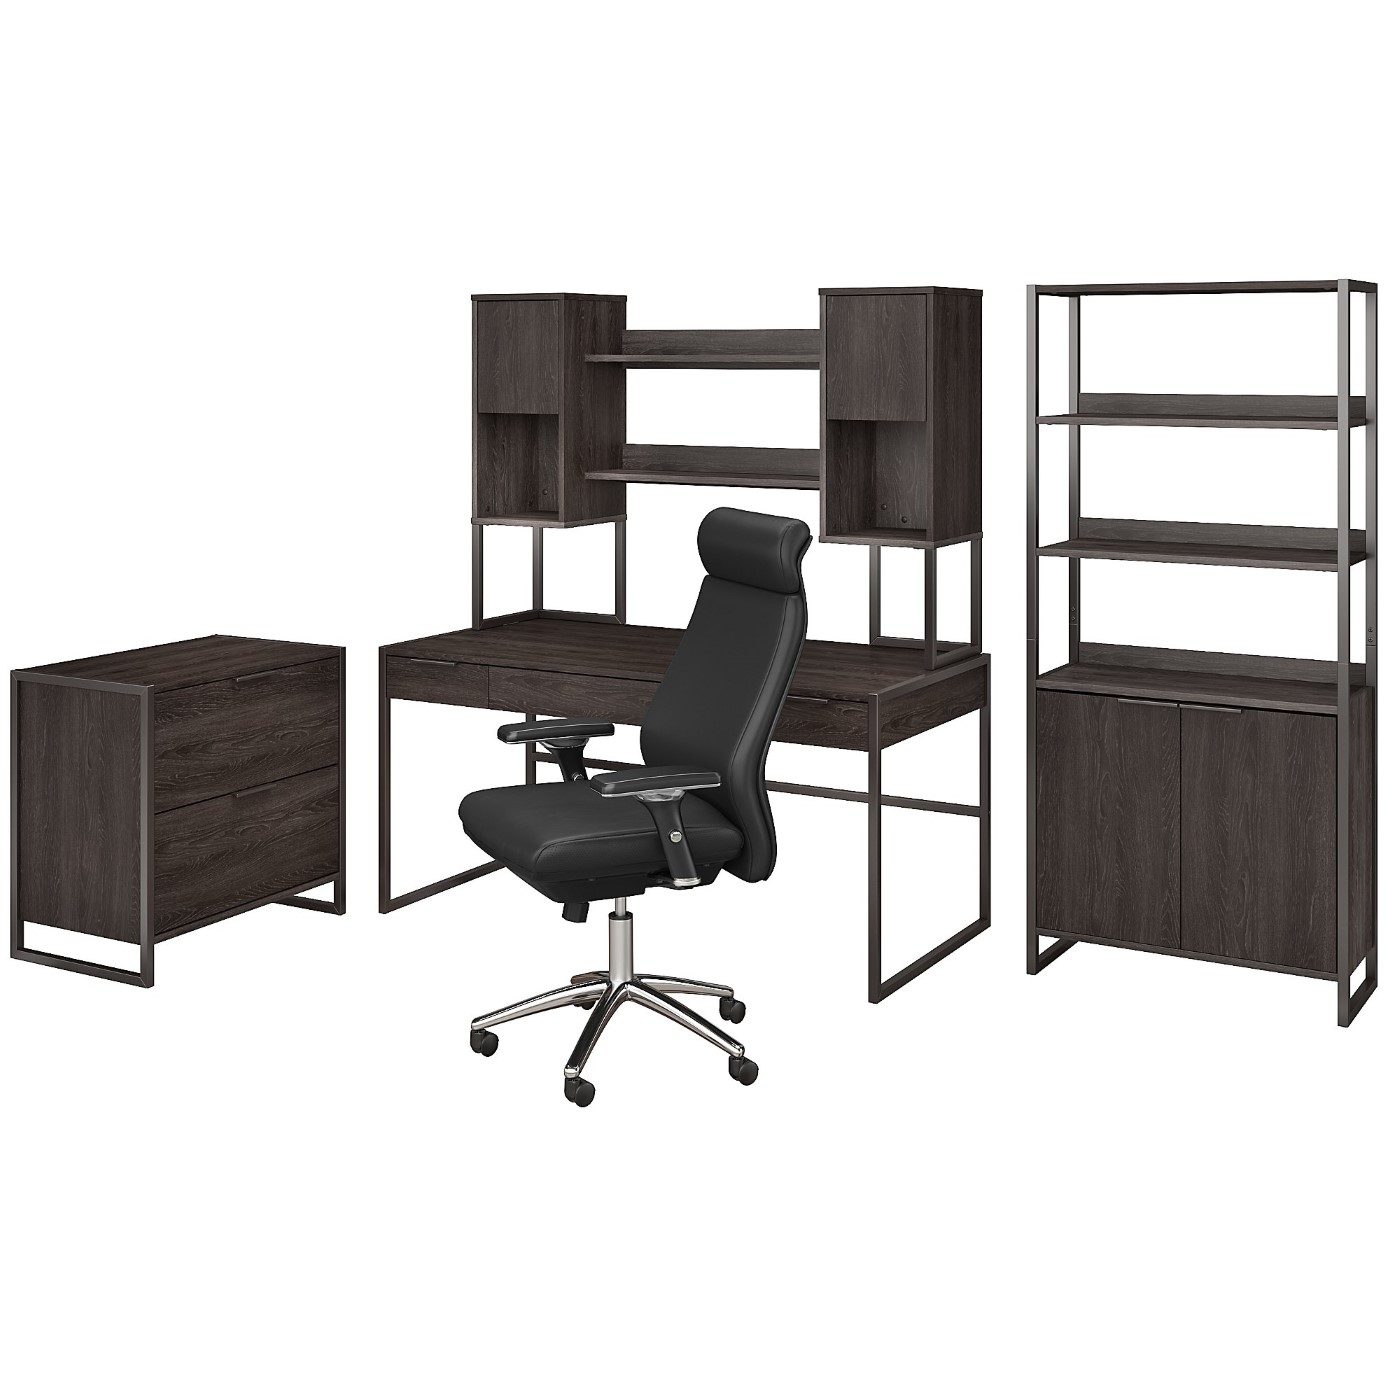 </b></font><b>The kathy ireland� Atria 60W Desk with Hutch, File Cabinet, Bookcase and High Back Office Chair is Sustainable Eco Friendly Furniture. Includes Free Shipping! </font>. <p>RATING:&#11088;&#11088;&#11088;&#11088;&#11088;</b></font></b>